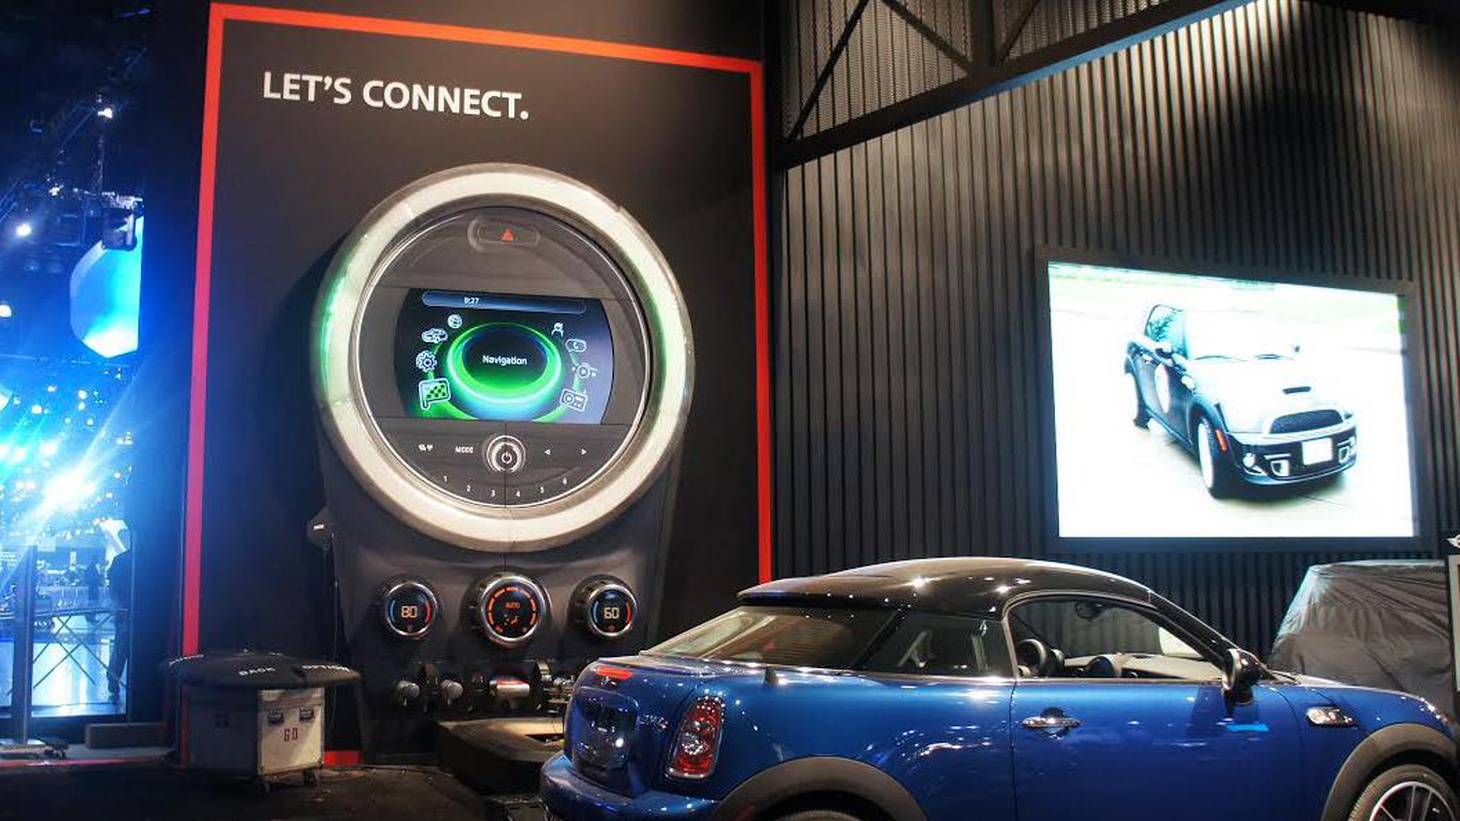 This year's LA Auto Show is all about communications technology. Will a new generation fall in love with cars if they're connected?  What about driving distractions?